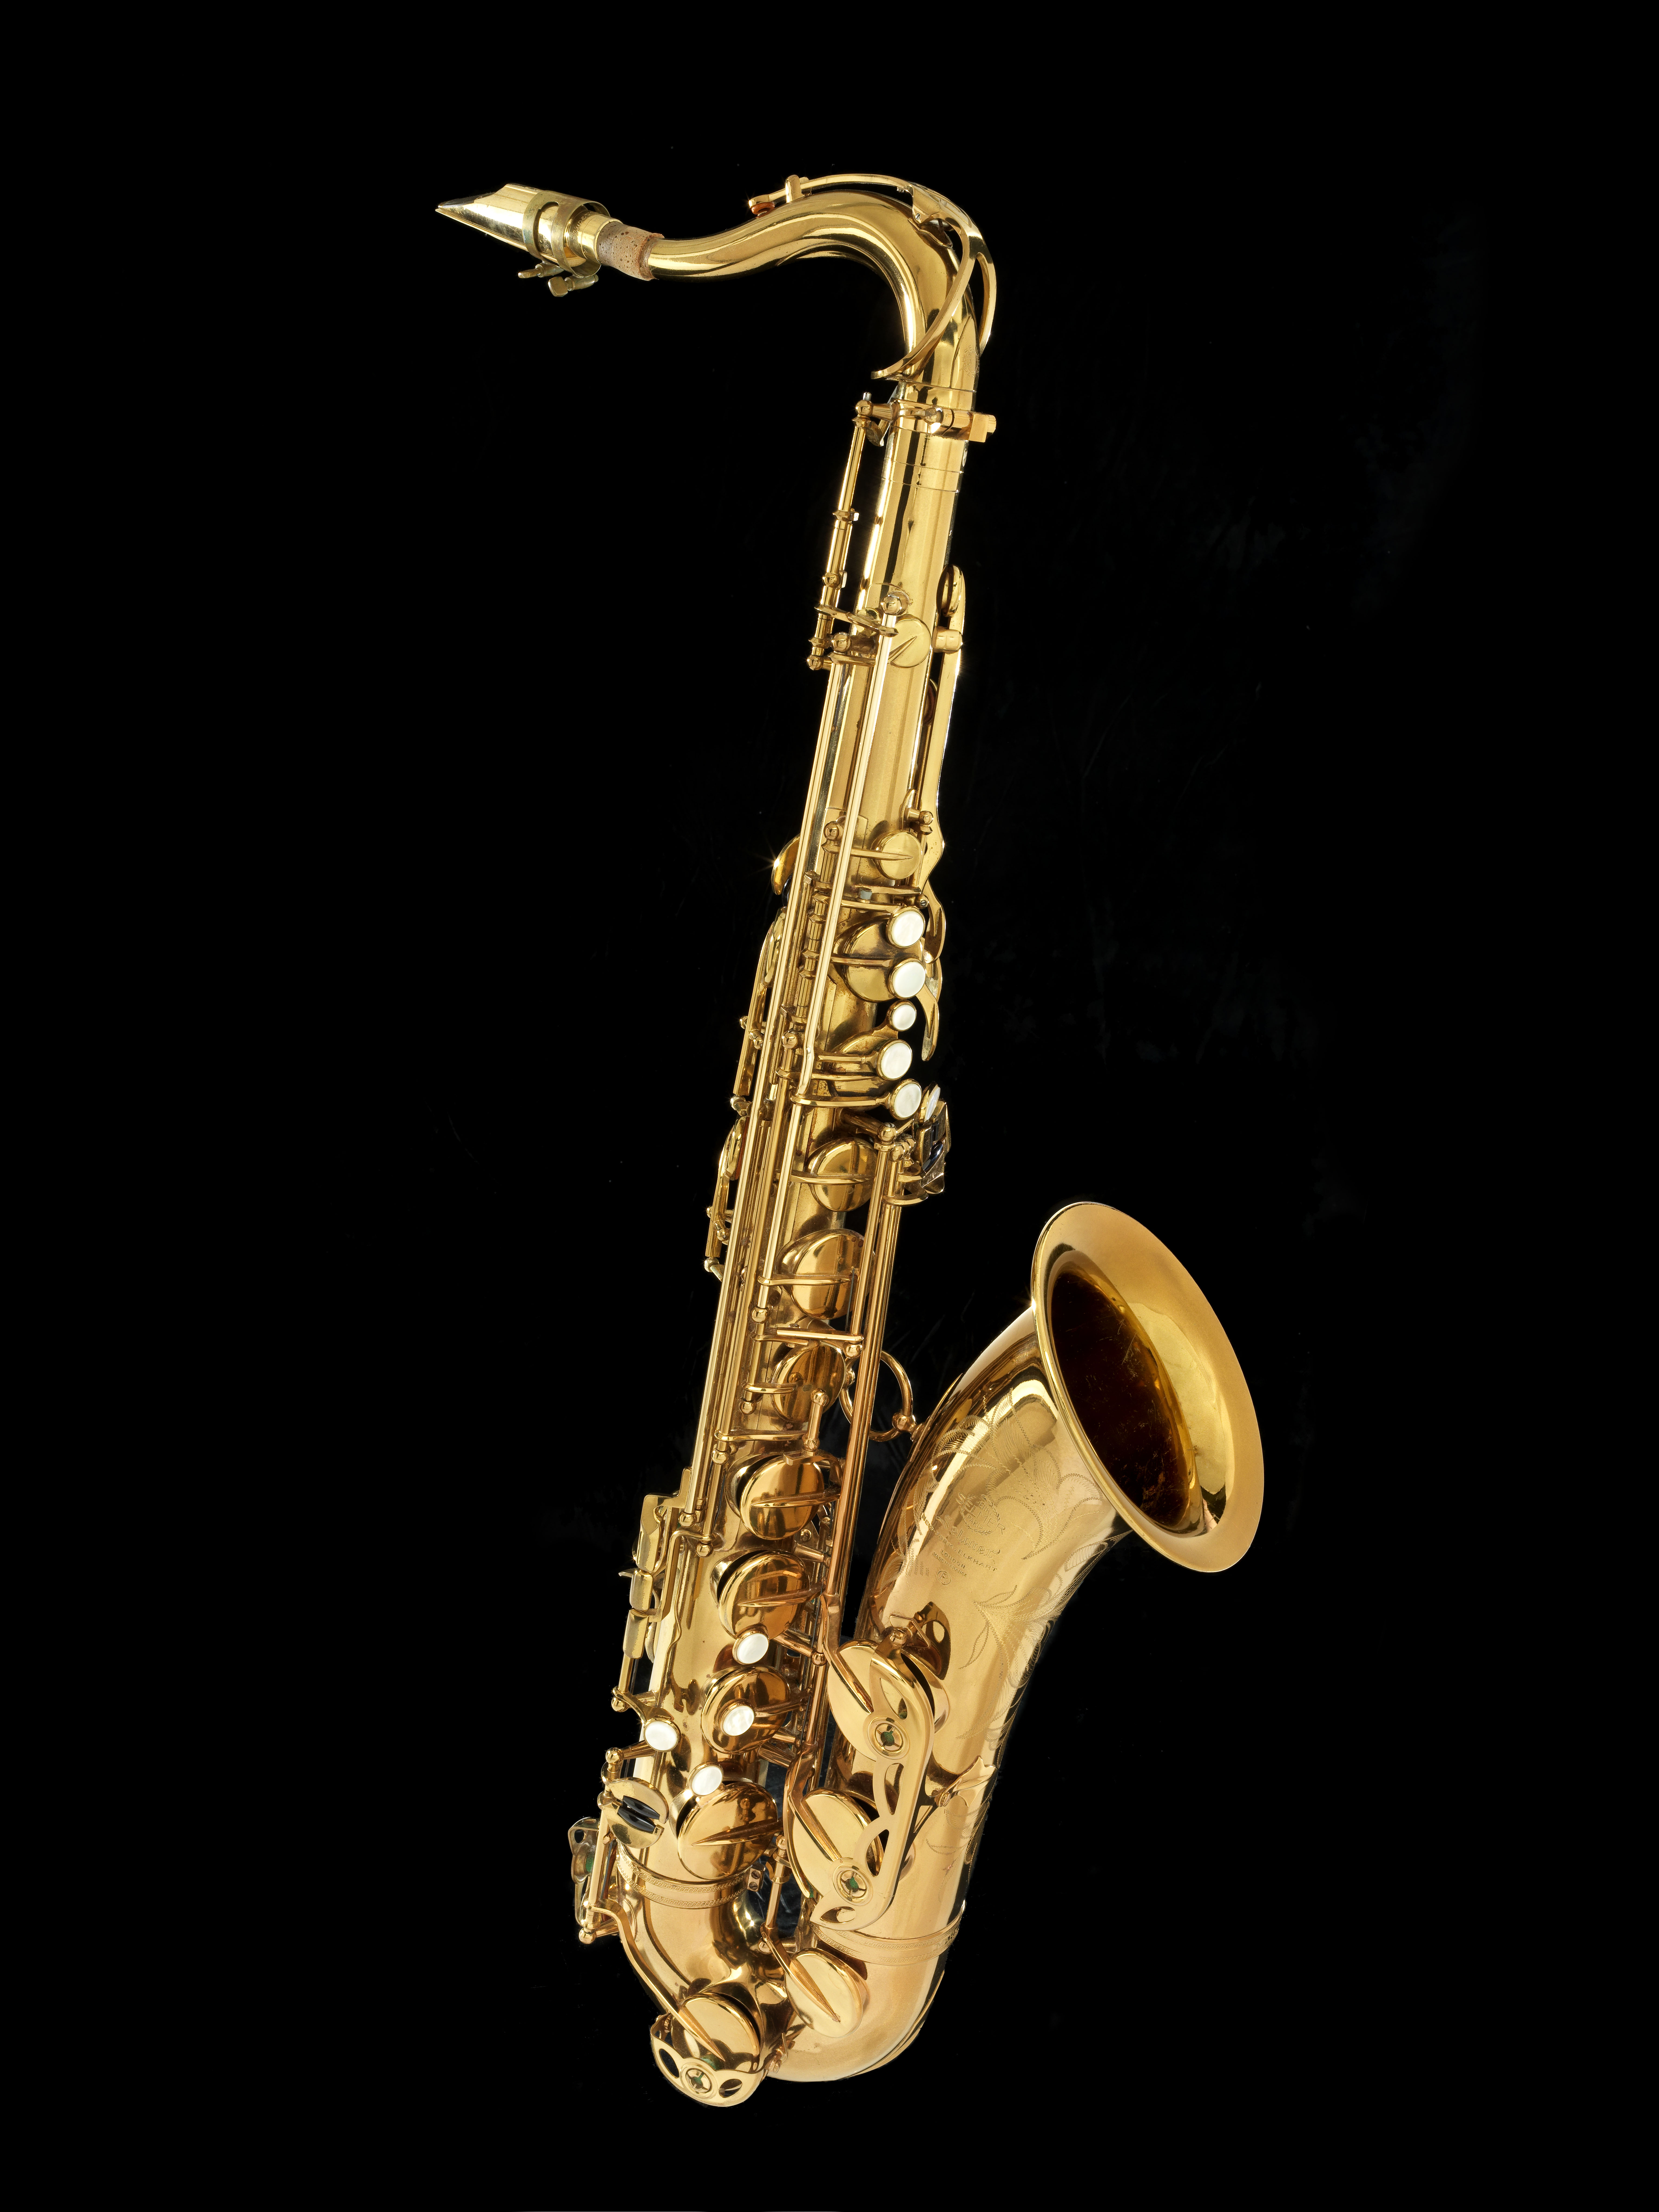 The John Coltrane Estate recently donated this Selmer Mark VI tenor saxophone, an instrument he used late in his career.